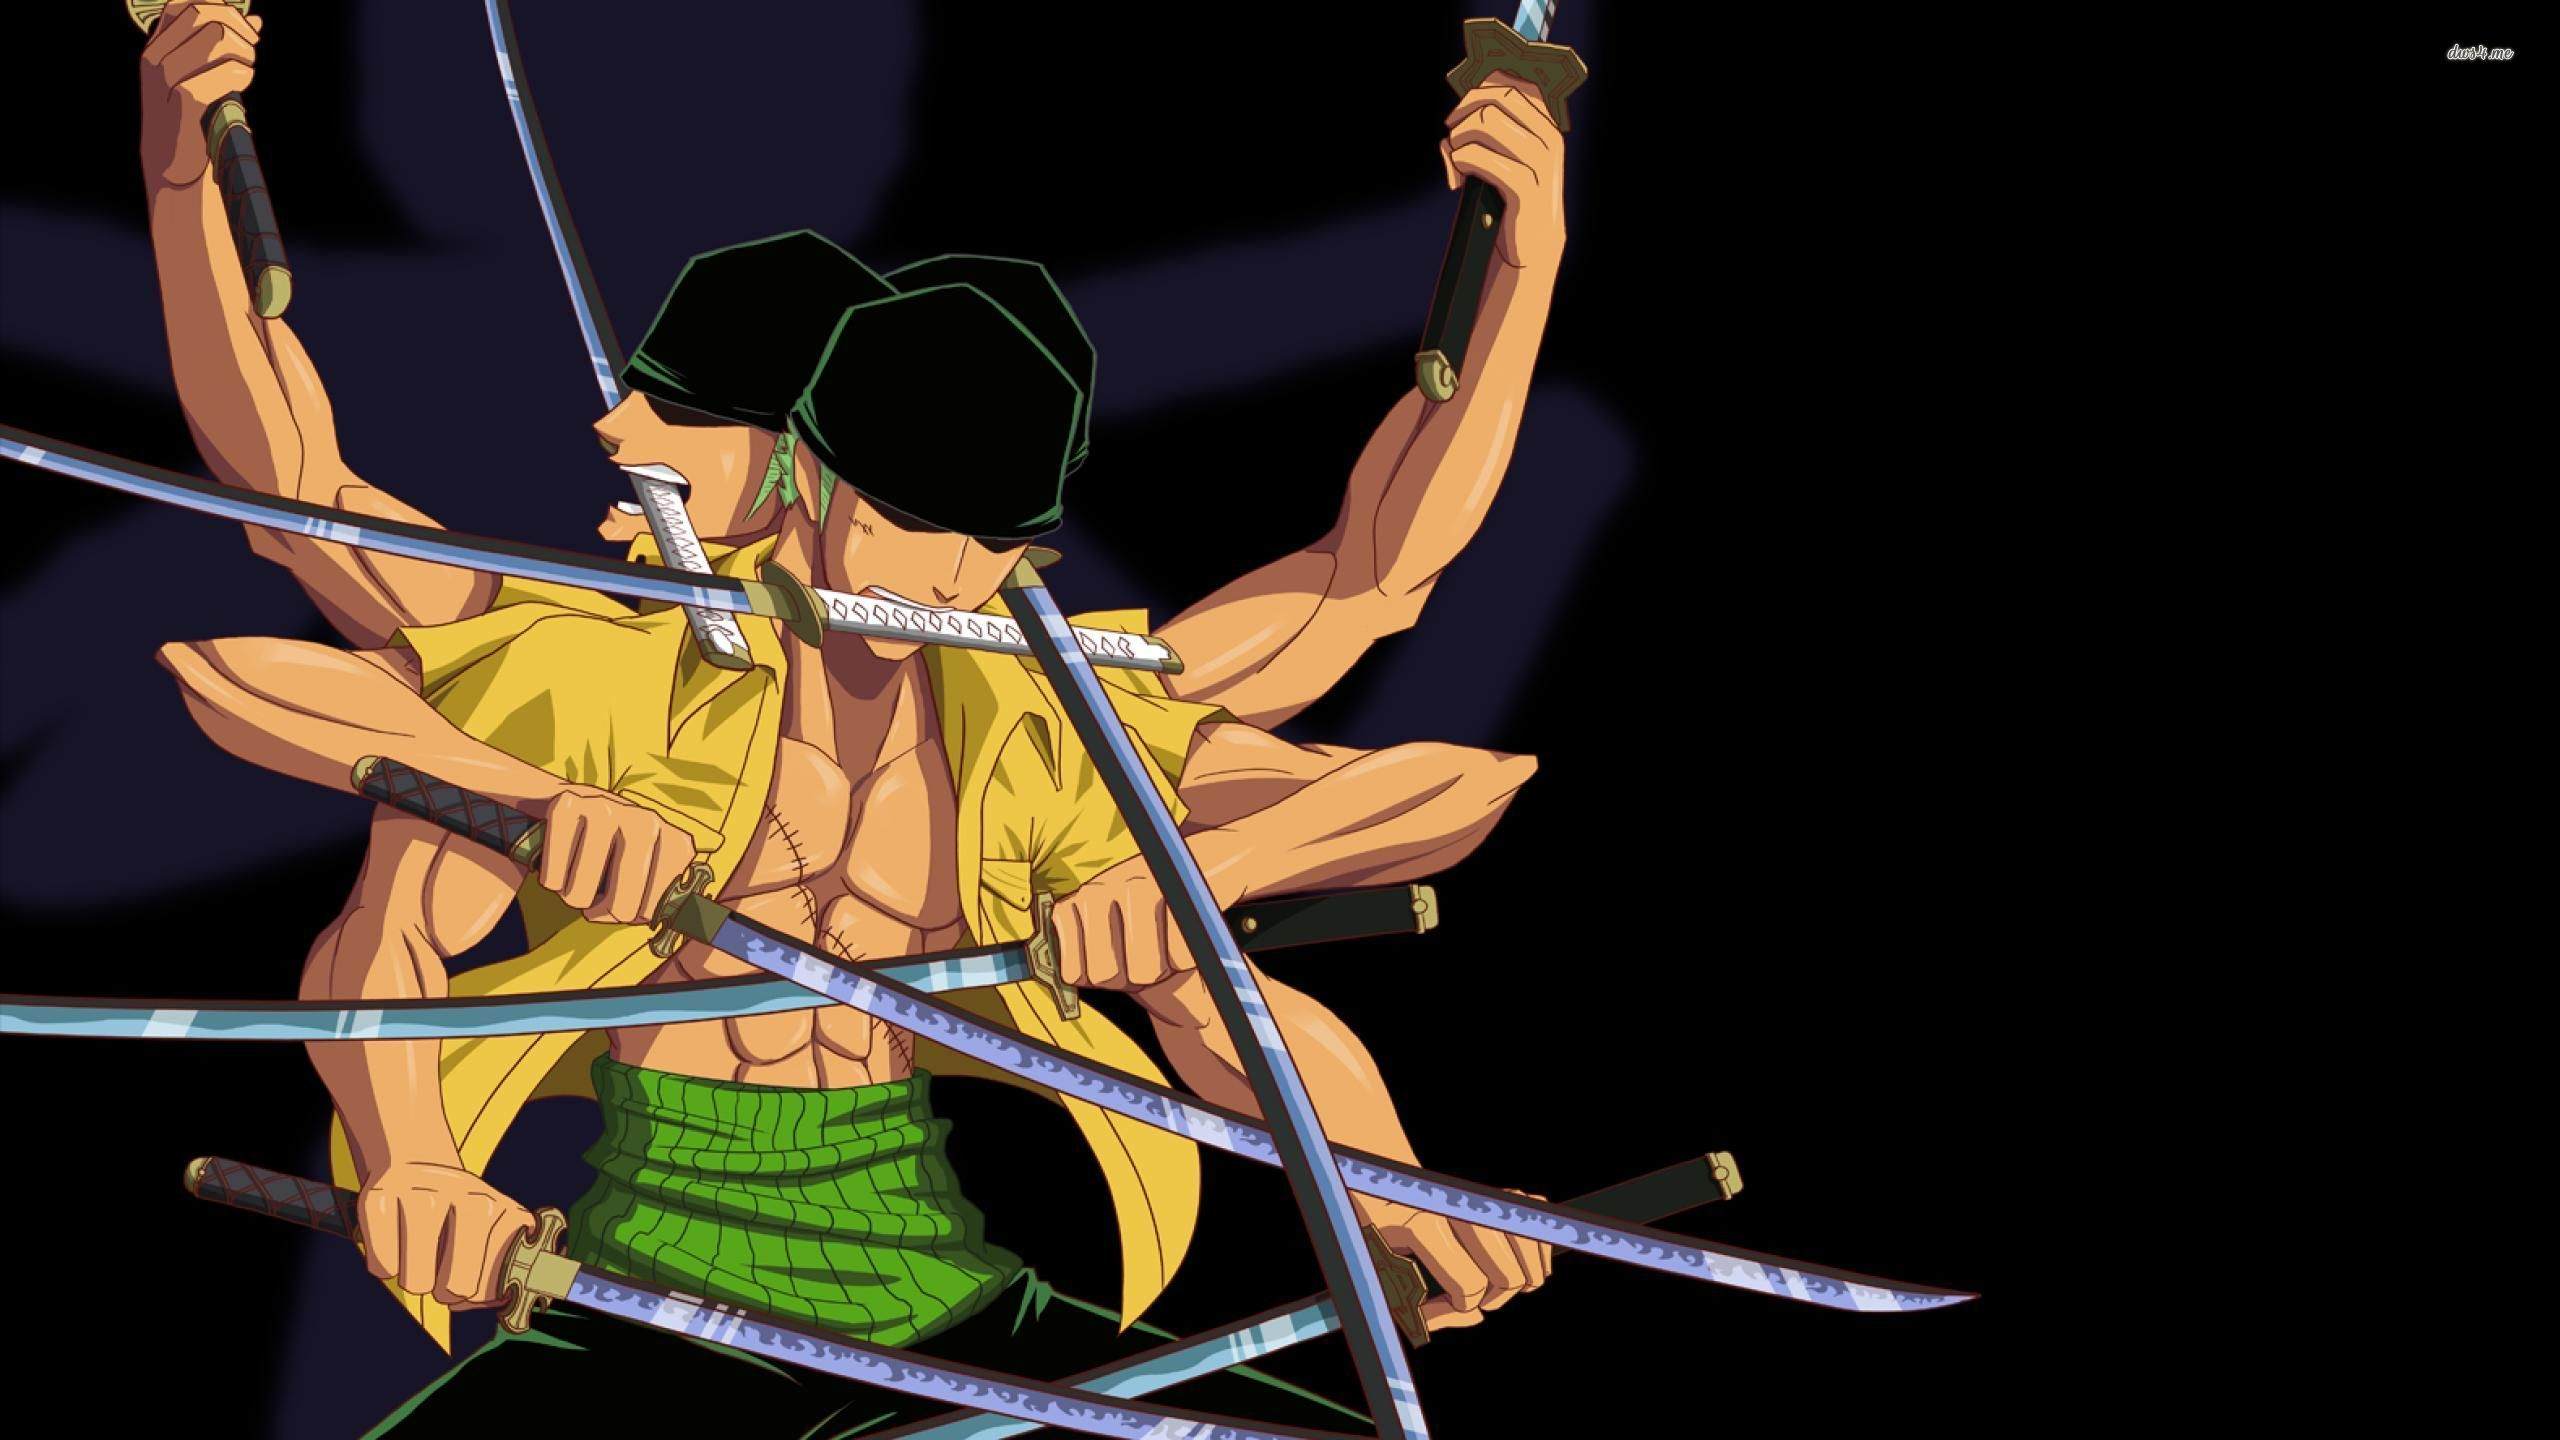 One Piece with a lot of swords wallpaper   Anime wallpapers   43600 2560x1440